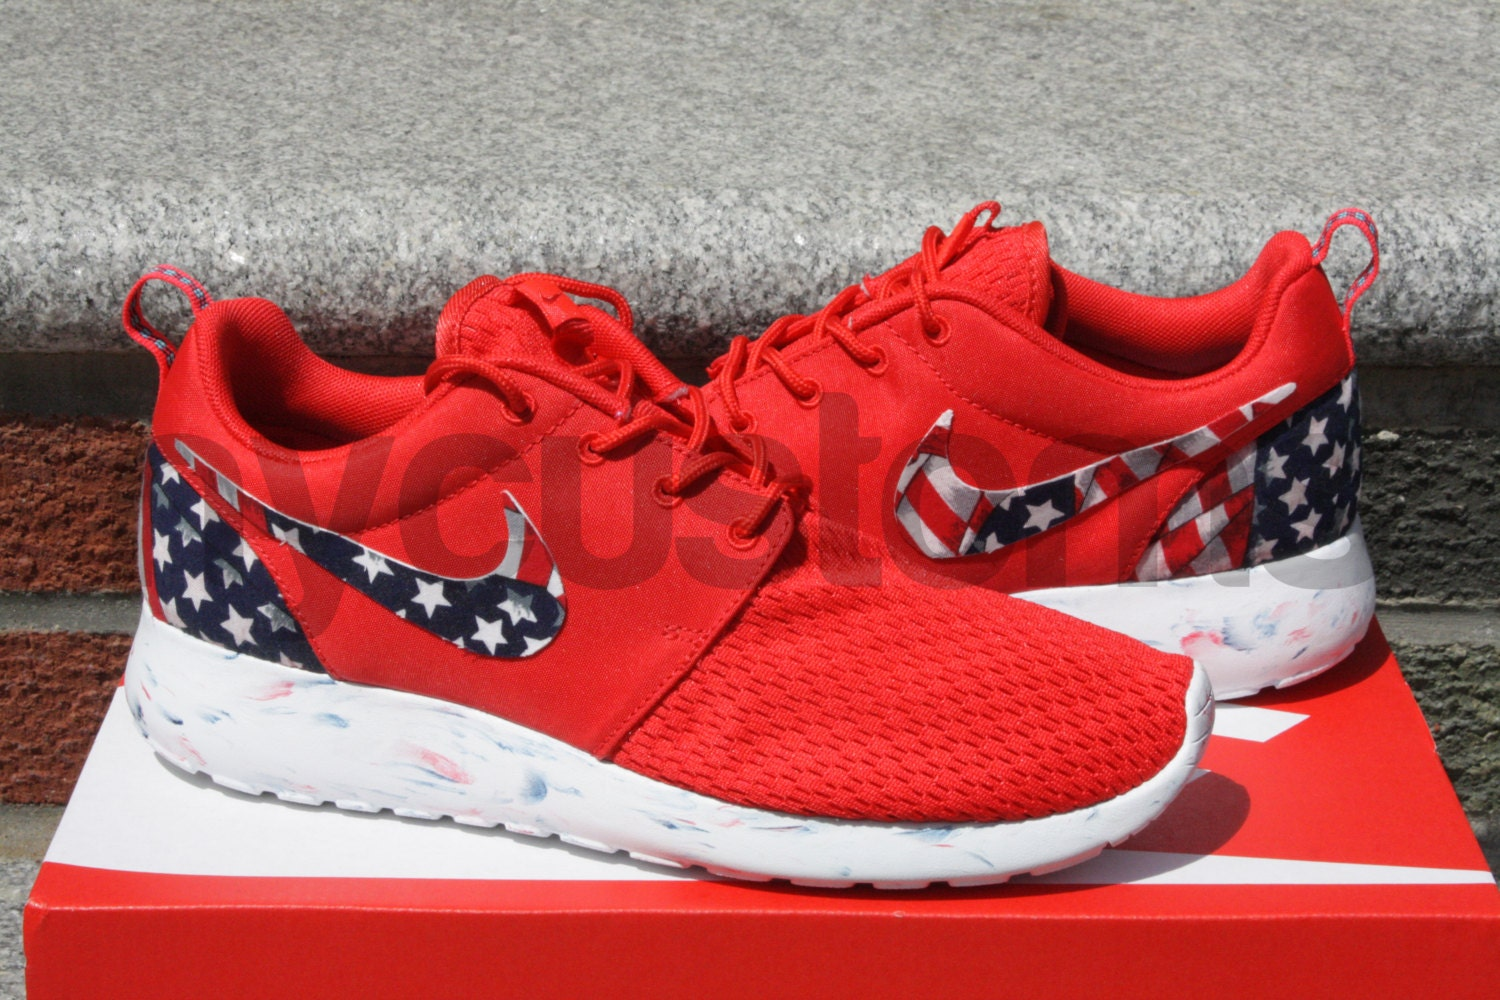 Limited Stock Nike Roshe Run Red Marble American Flag Pride